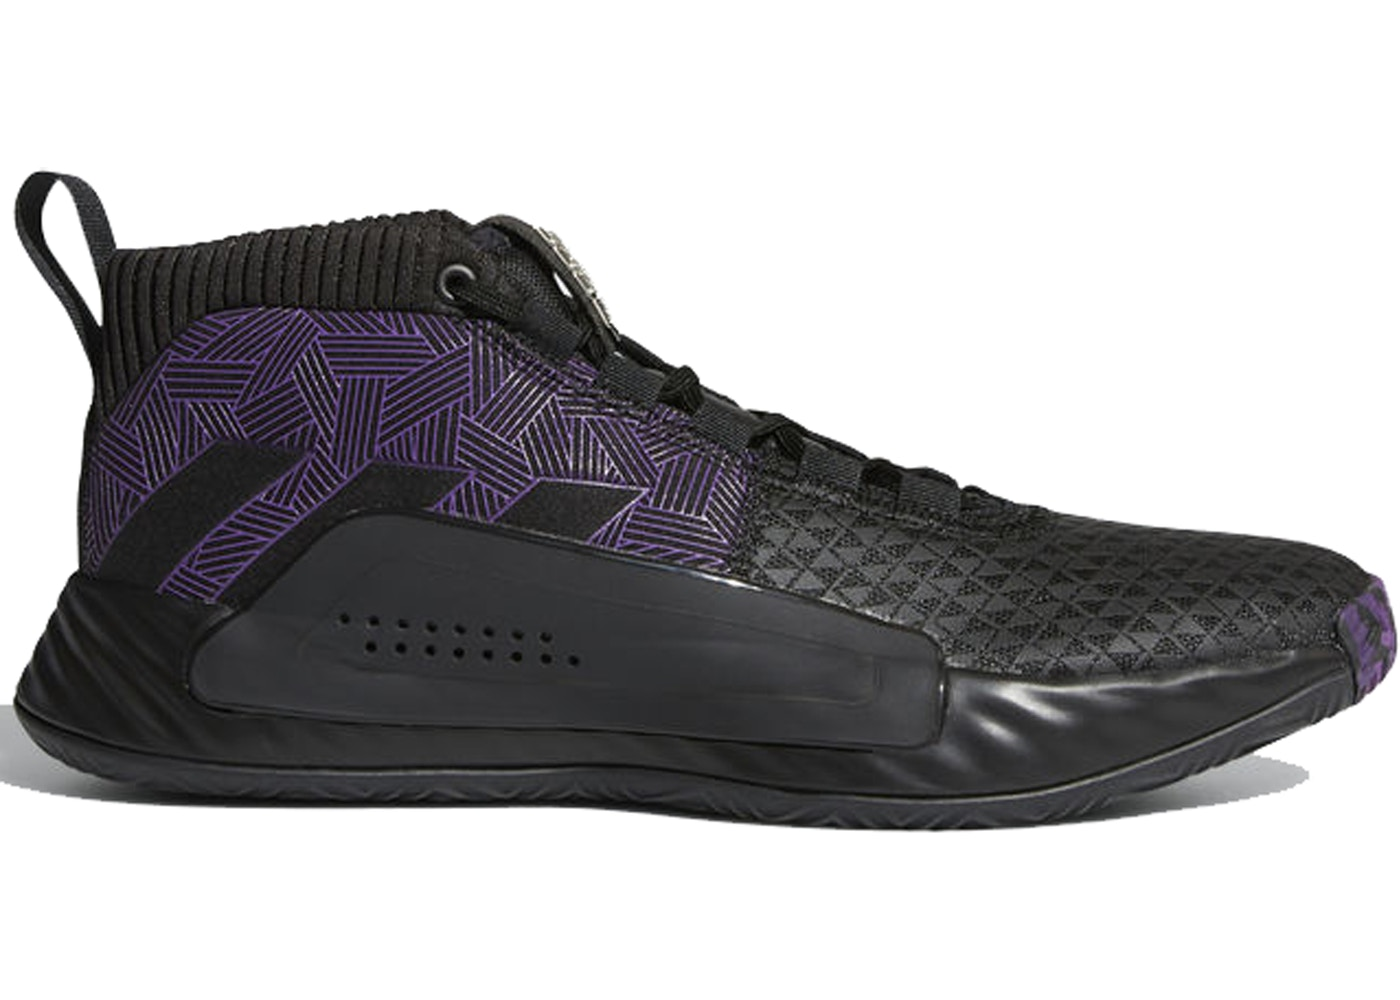 3a97a02358 adidas Dame 5 Marvel Black Panther